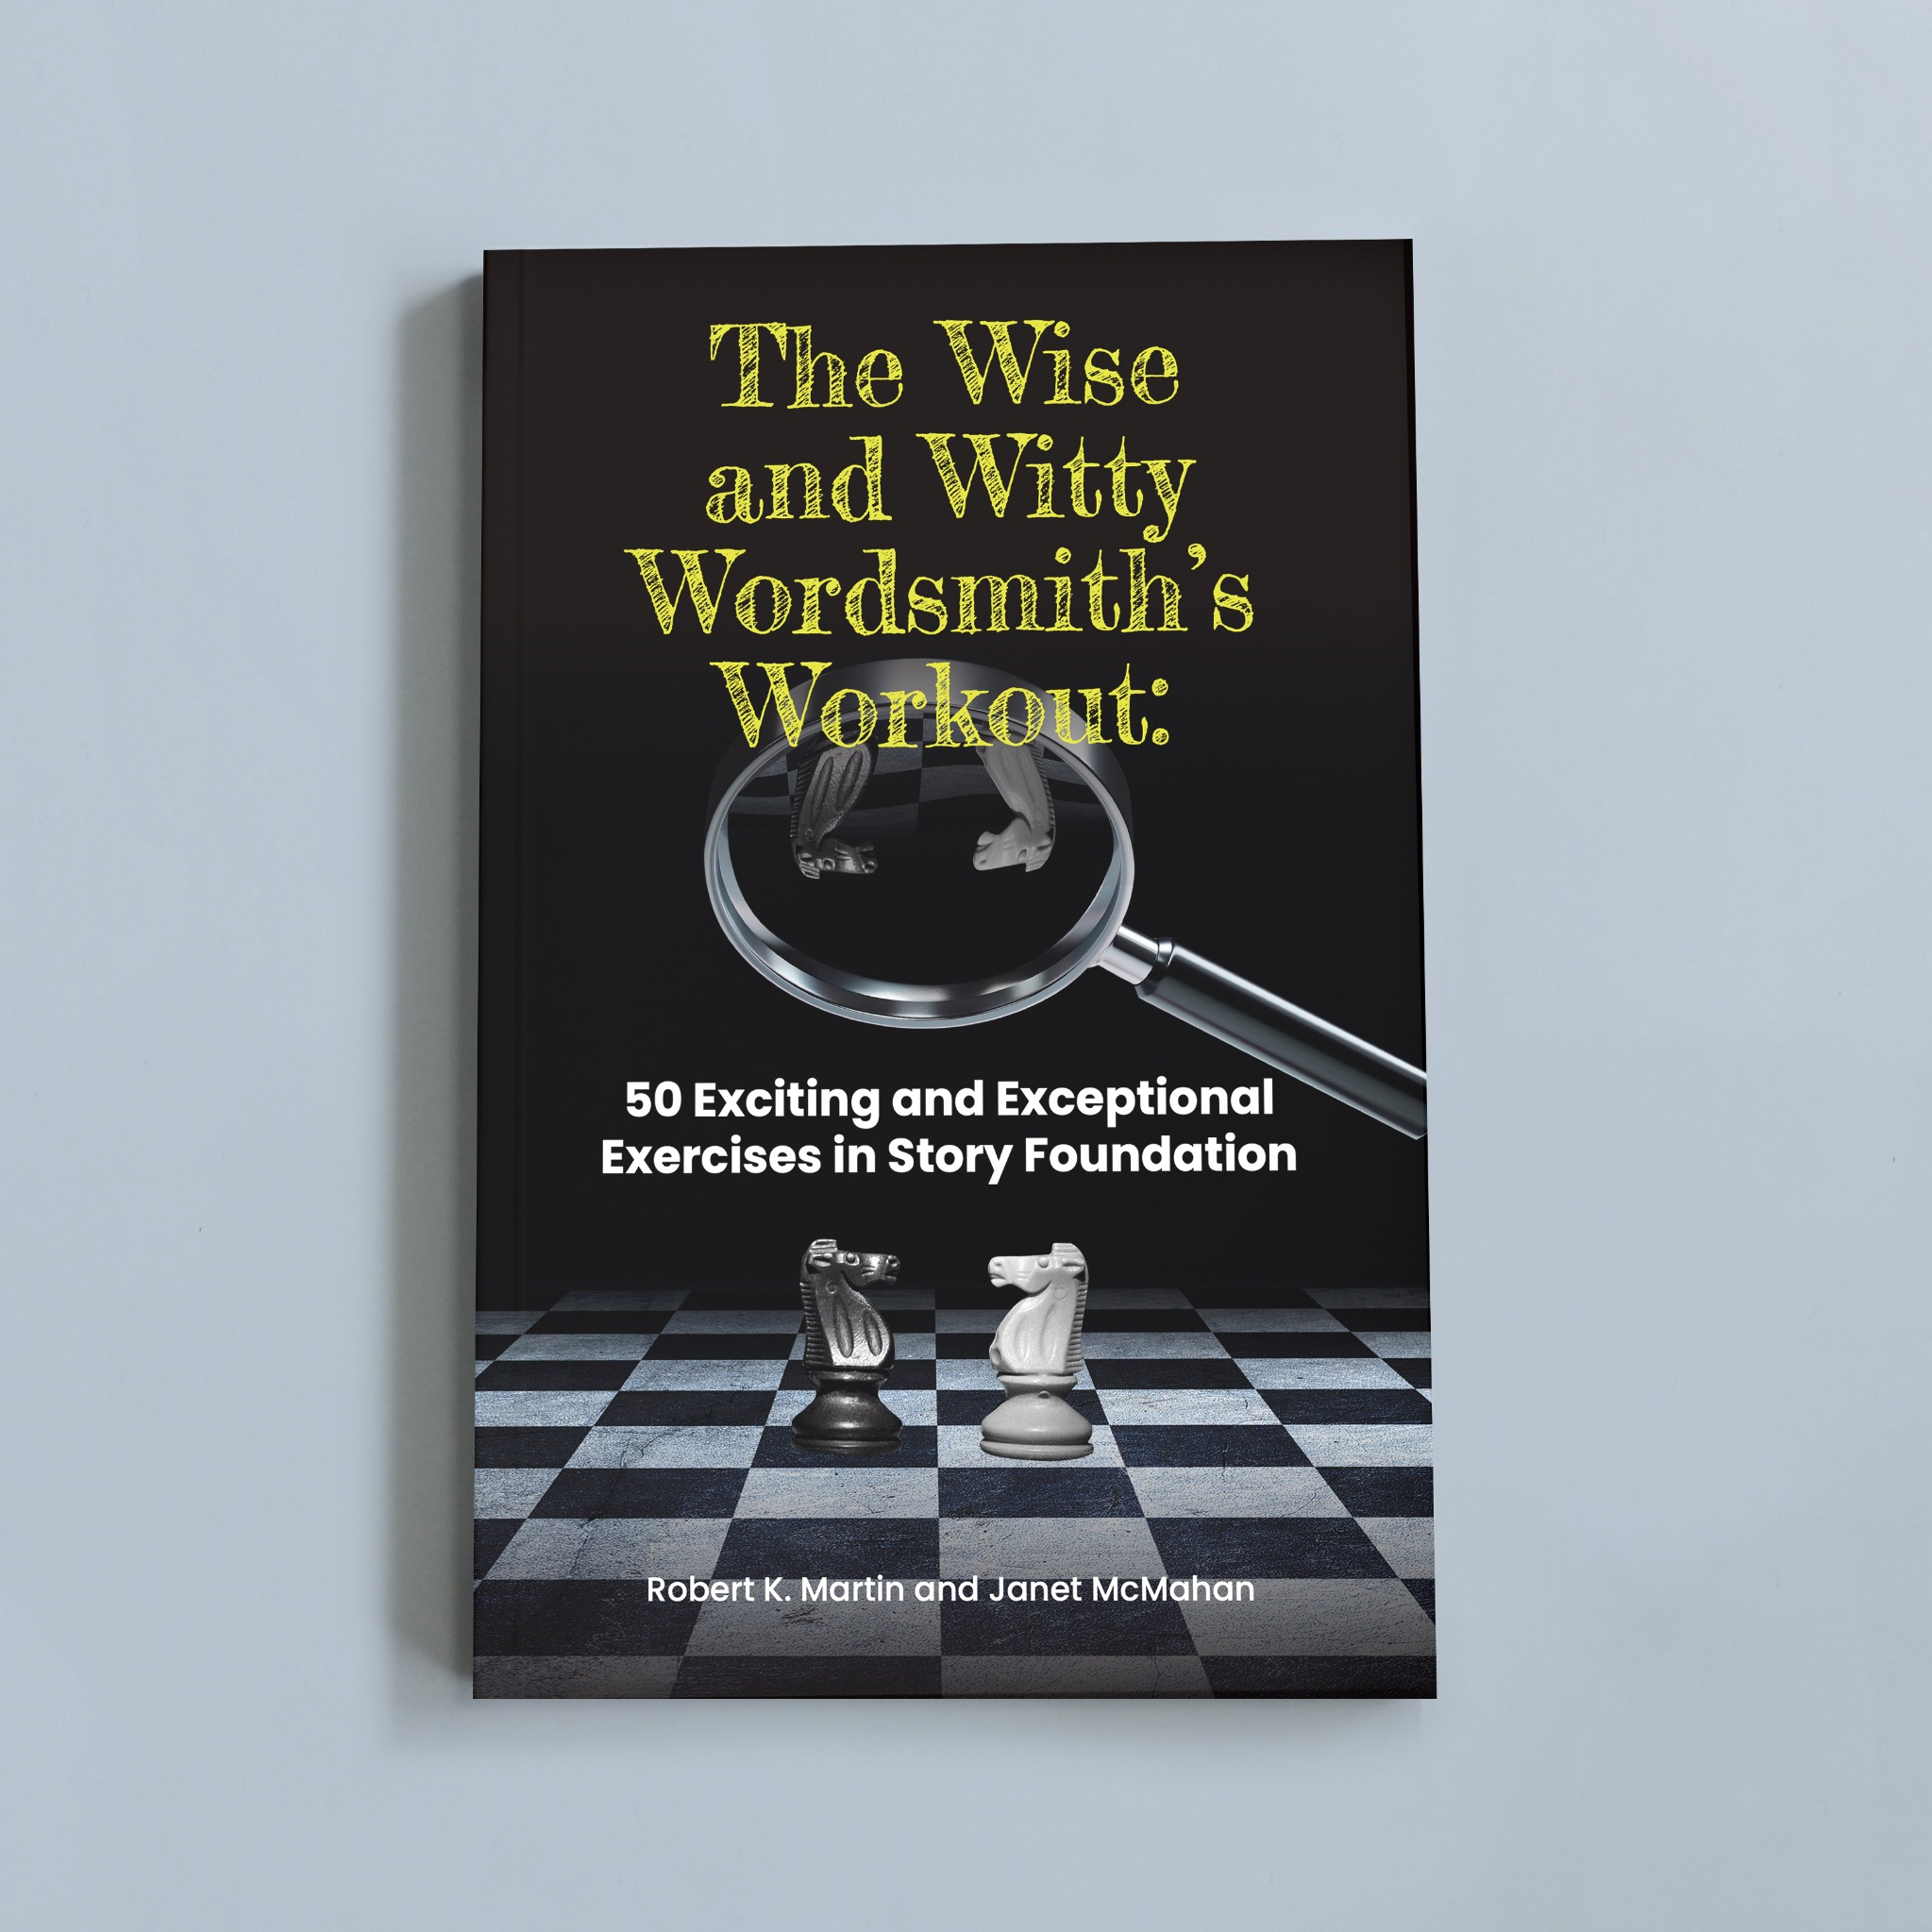 The Wise and Witty Wordsmith's Workout Bundle